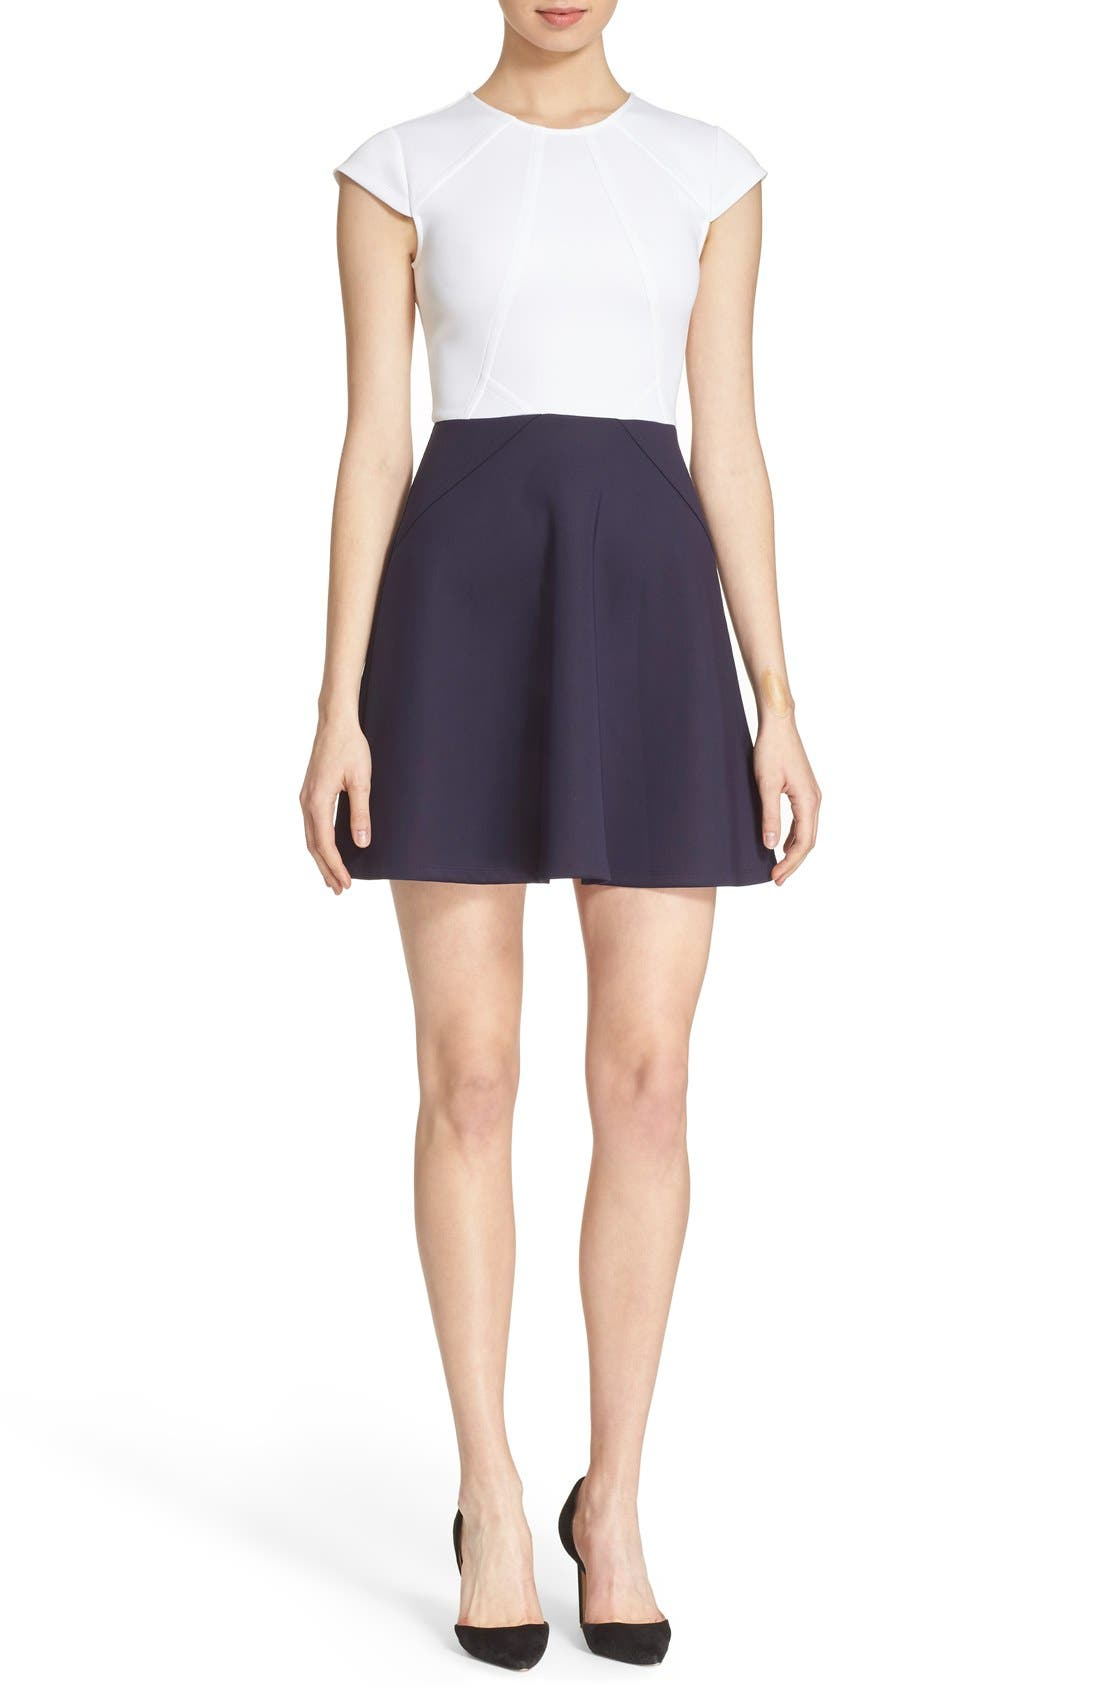 TED BAKER LONDON, 'AABRR' Colorblock Cap Sleeve Skater Dress, Main thumbnail 1, color, 402